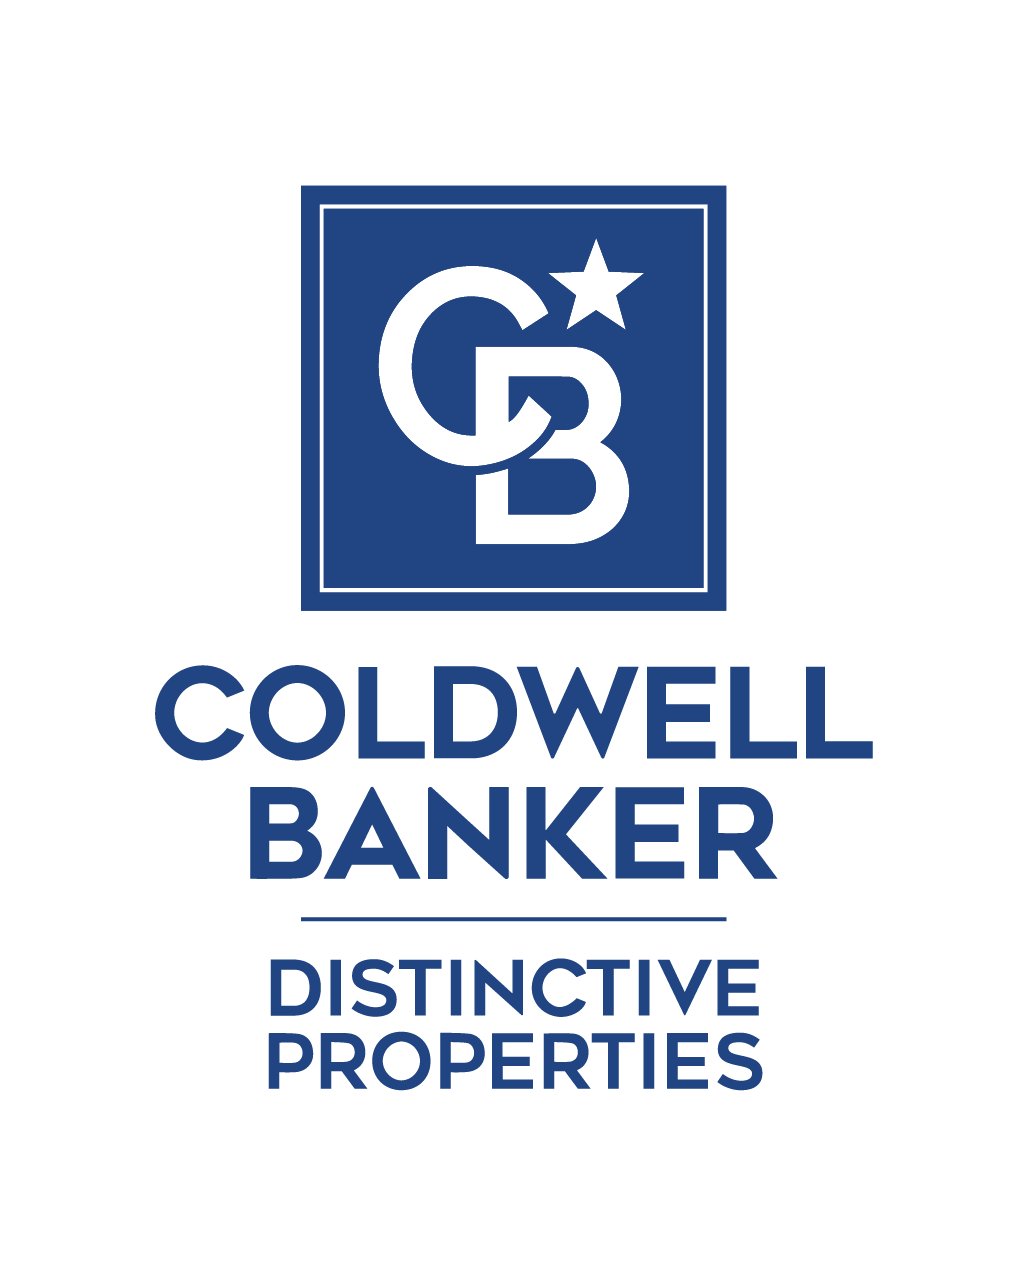 Greg Rudolph - Coldwell Banker Distinctive Properties Logo